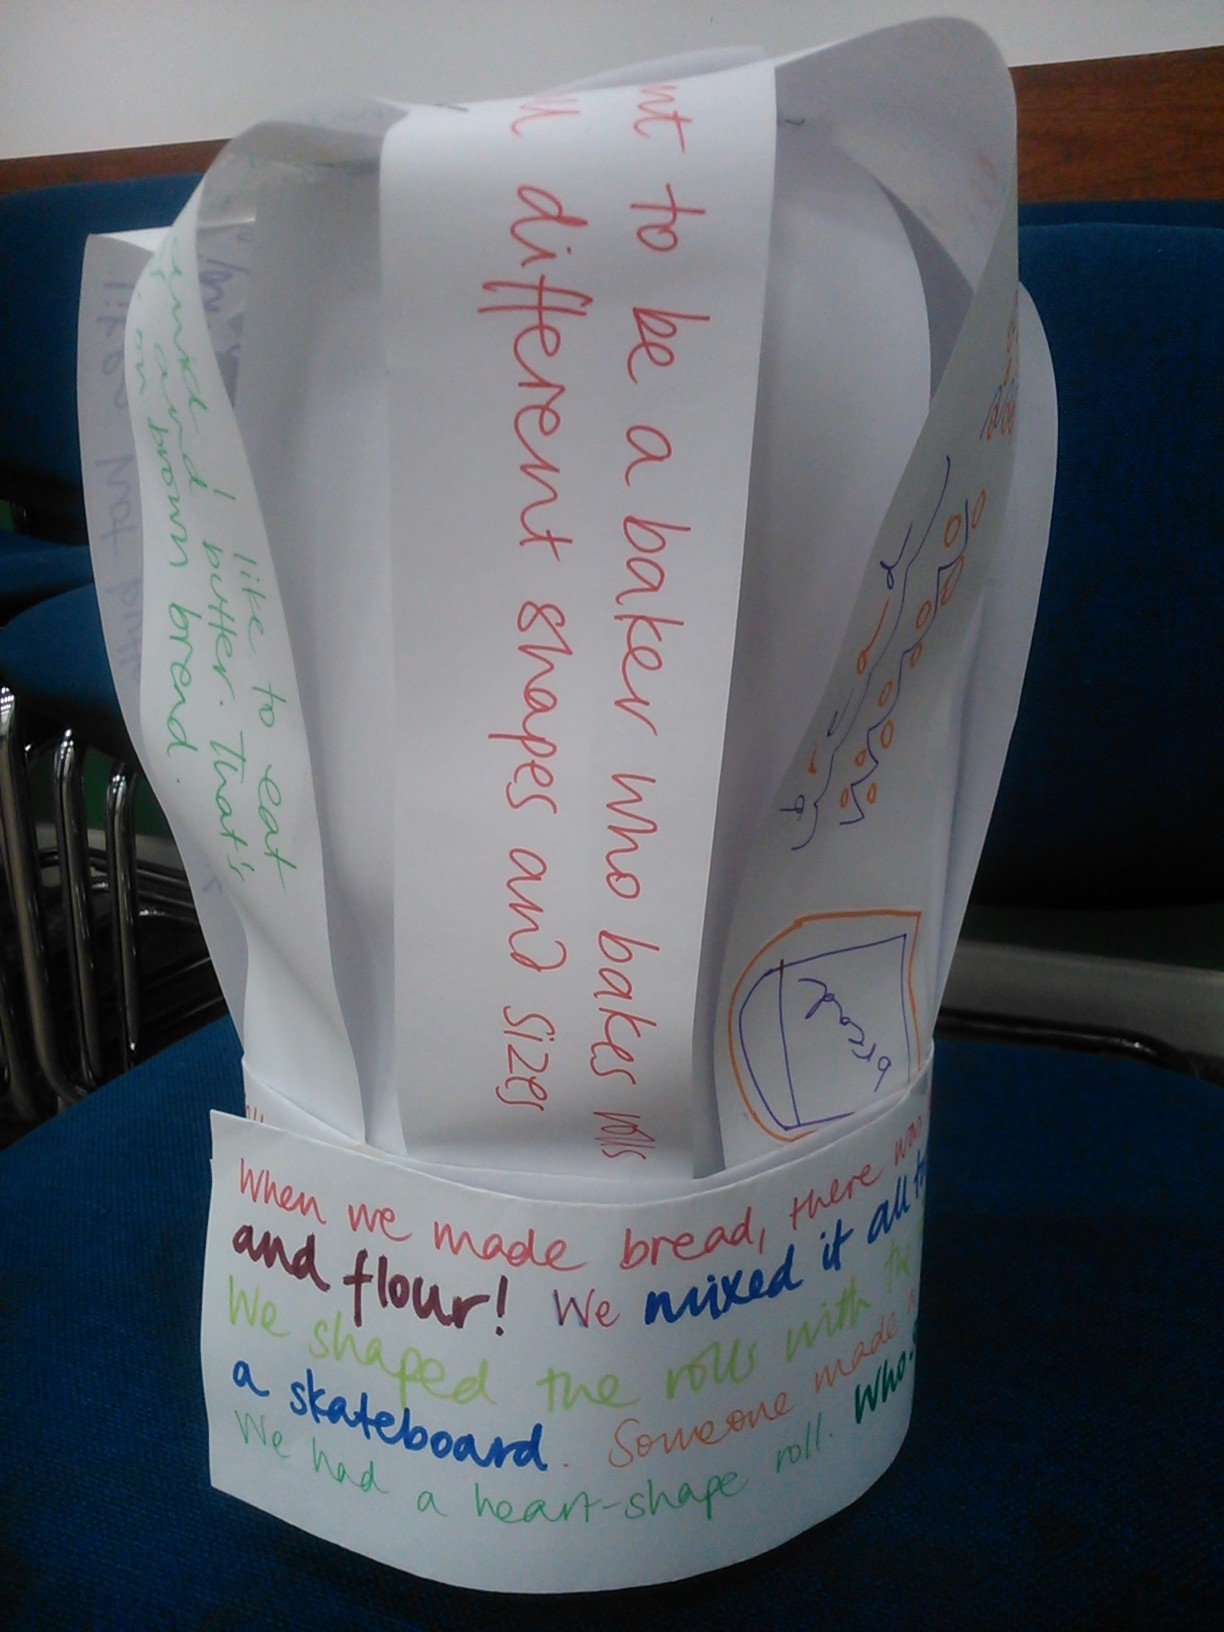 Our baker's hat with story ideas written in...